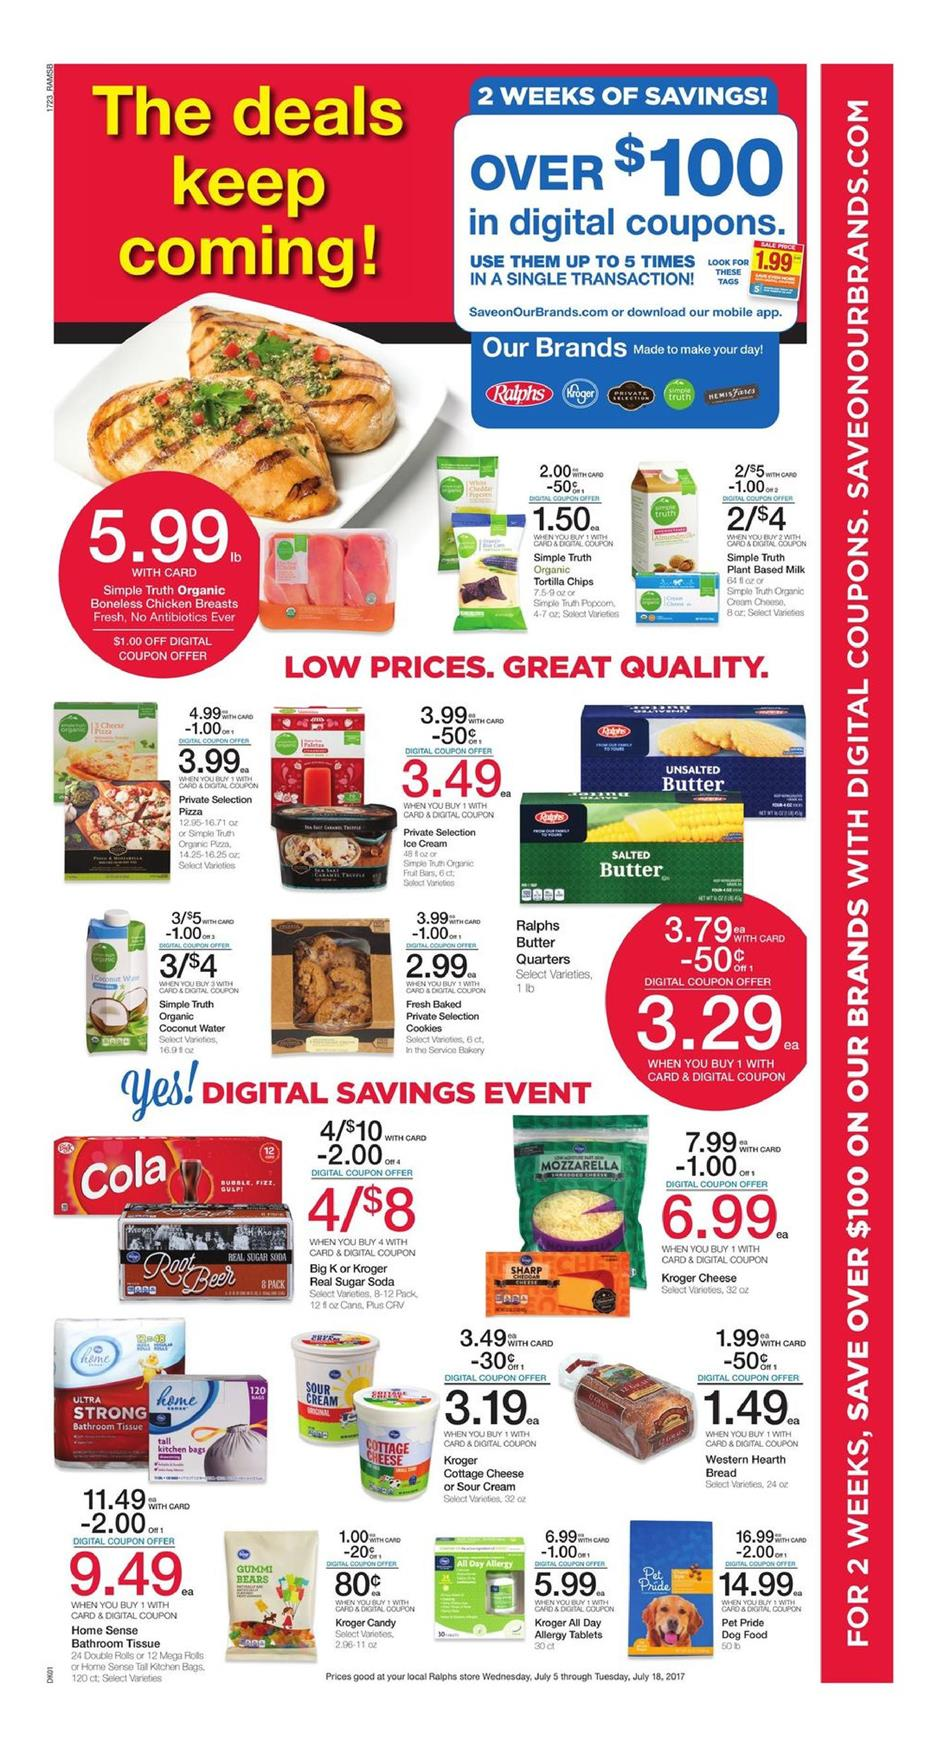 Menards Weekly Ad December 9 - 15, Hot Buys ~ Find the deals to help you save money with Menards Ads in United States. From weekly store Ads to grocery Ads get the savings you deserve. Browse the current Shaws weekly ad this week, Preview valid 12/9 - 12/ Some list of Menards Weekly Ad sale for this week 12/9/ - 12/15/